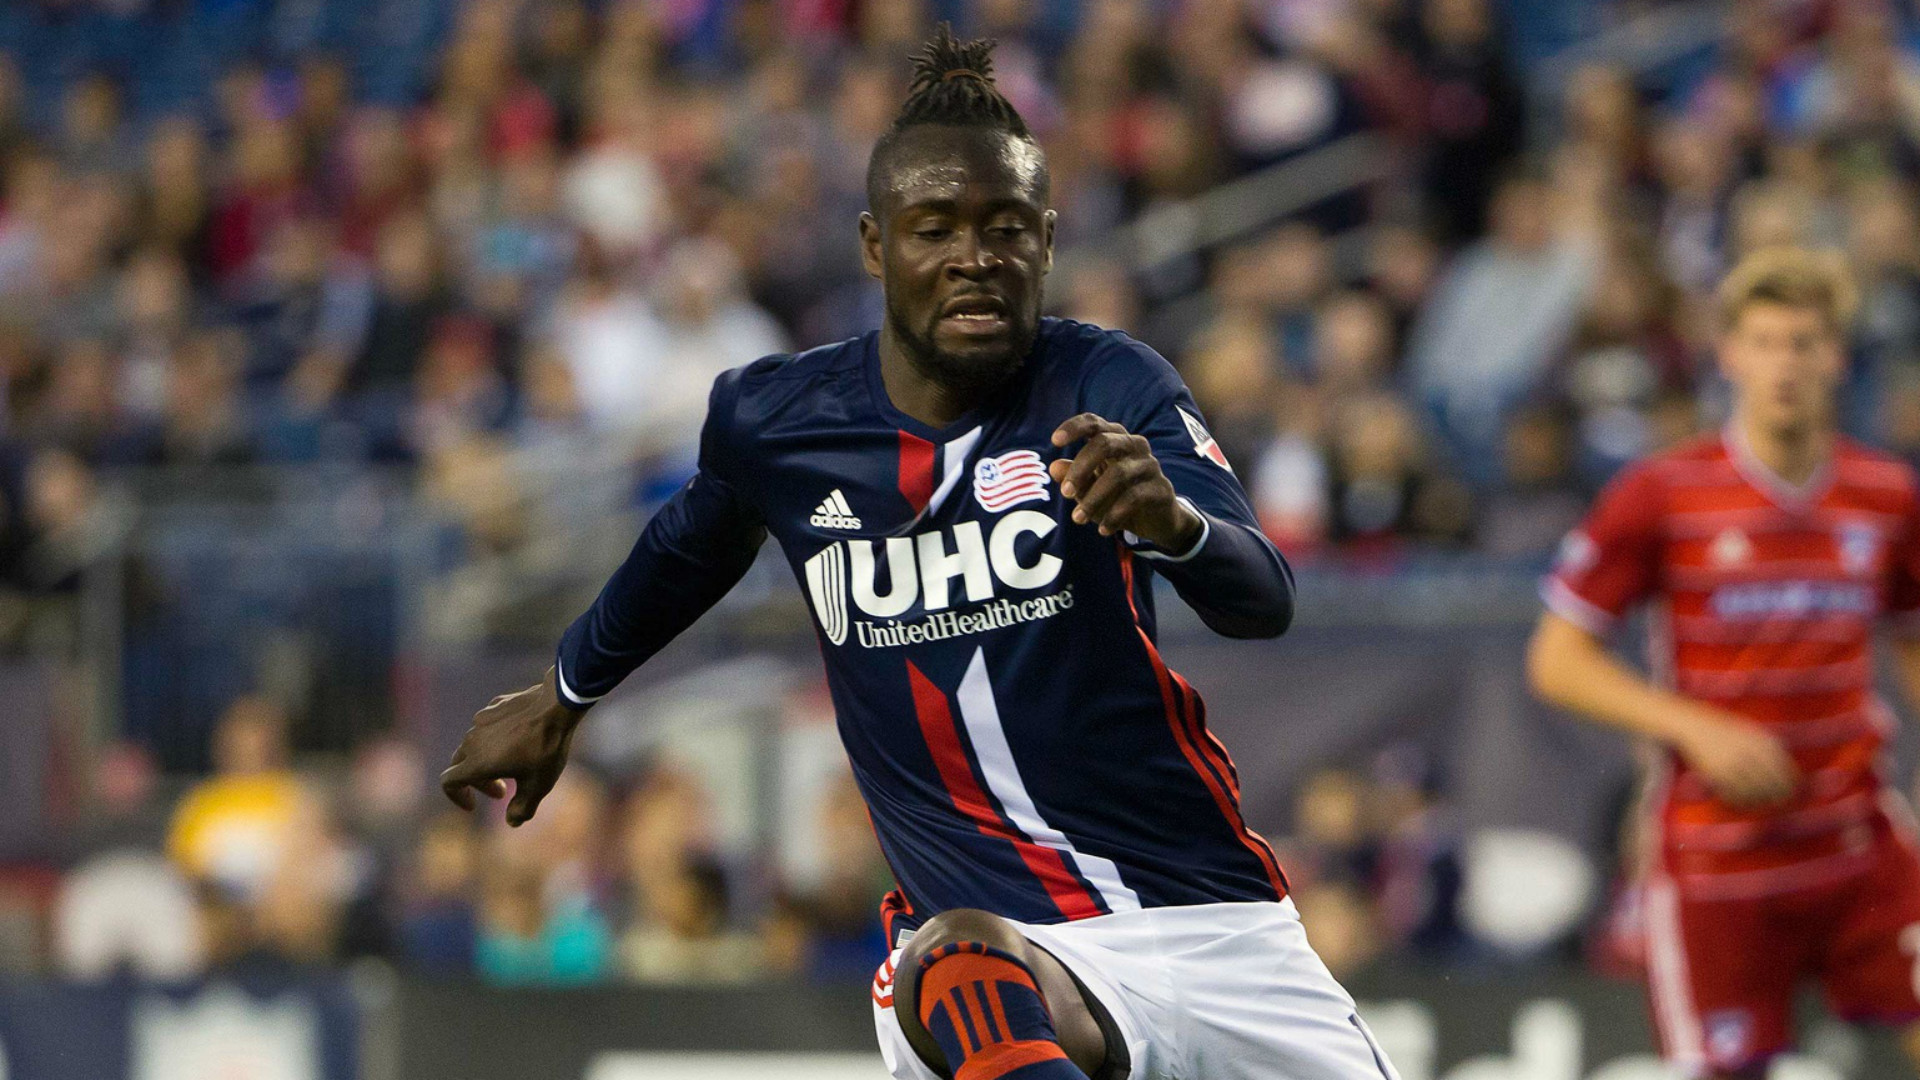 Orlando 3 Rev 1: Kei Kamara on target again for the Revs in MLS